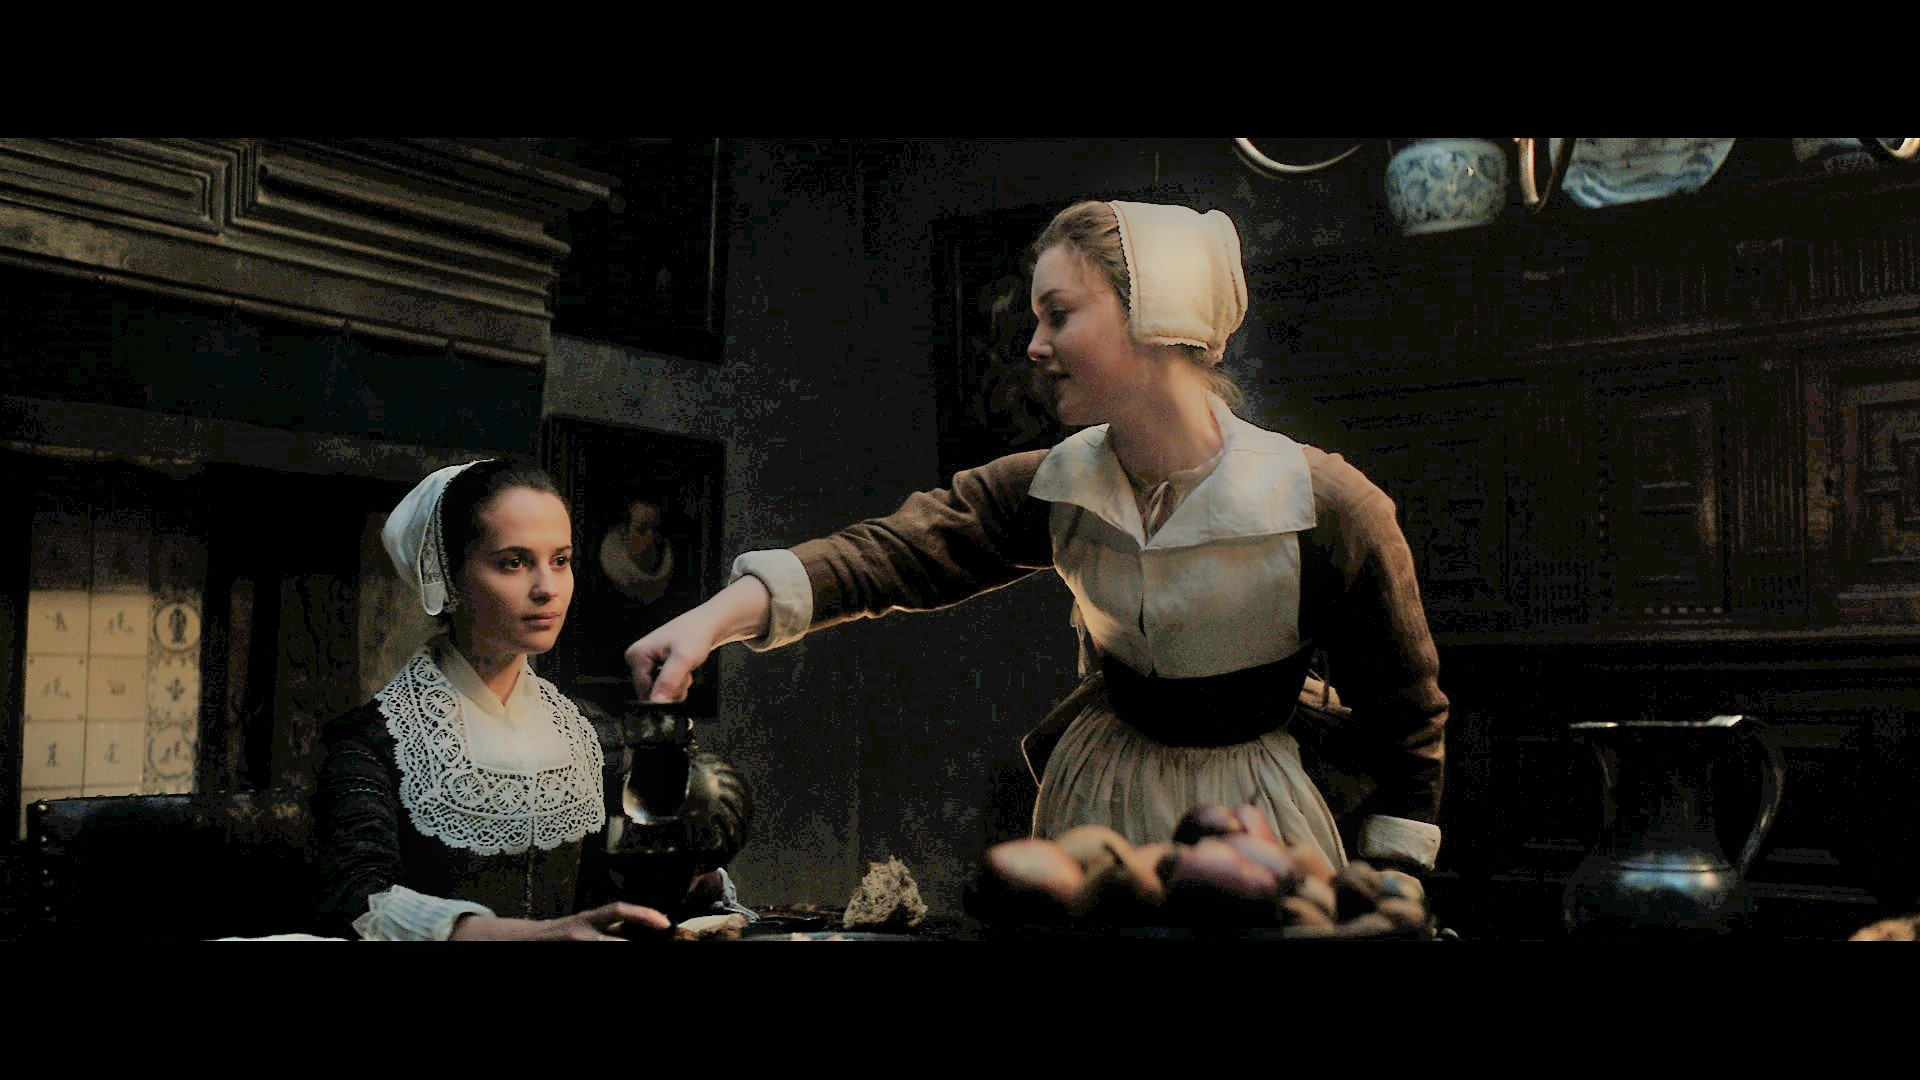 映画場面写真 女主人と女中 (C) 2017 TULIP FEVER FILMS LTD.  ALL RIGHTS RESERVED.